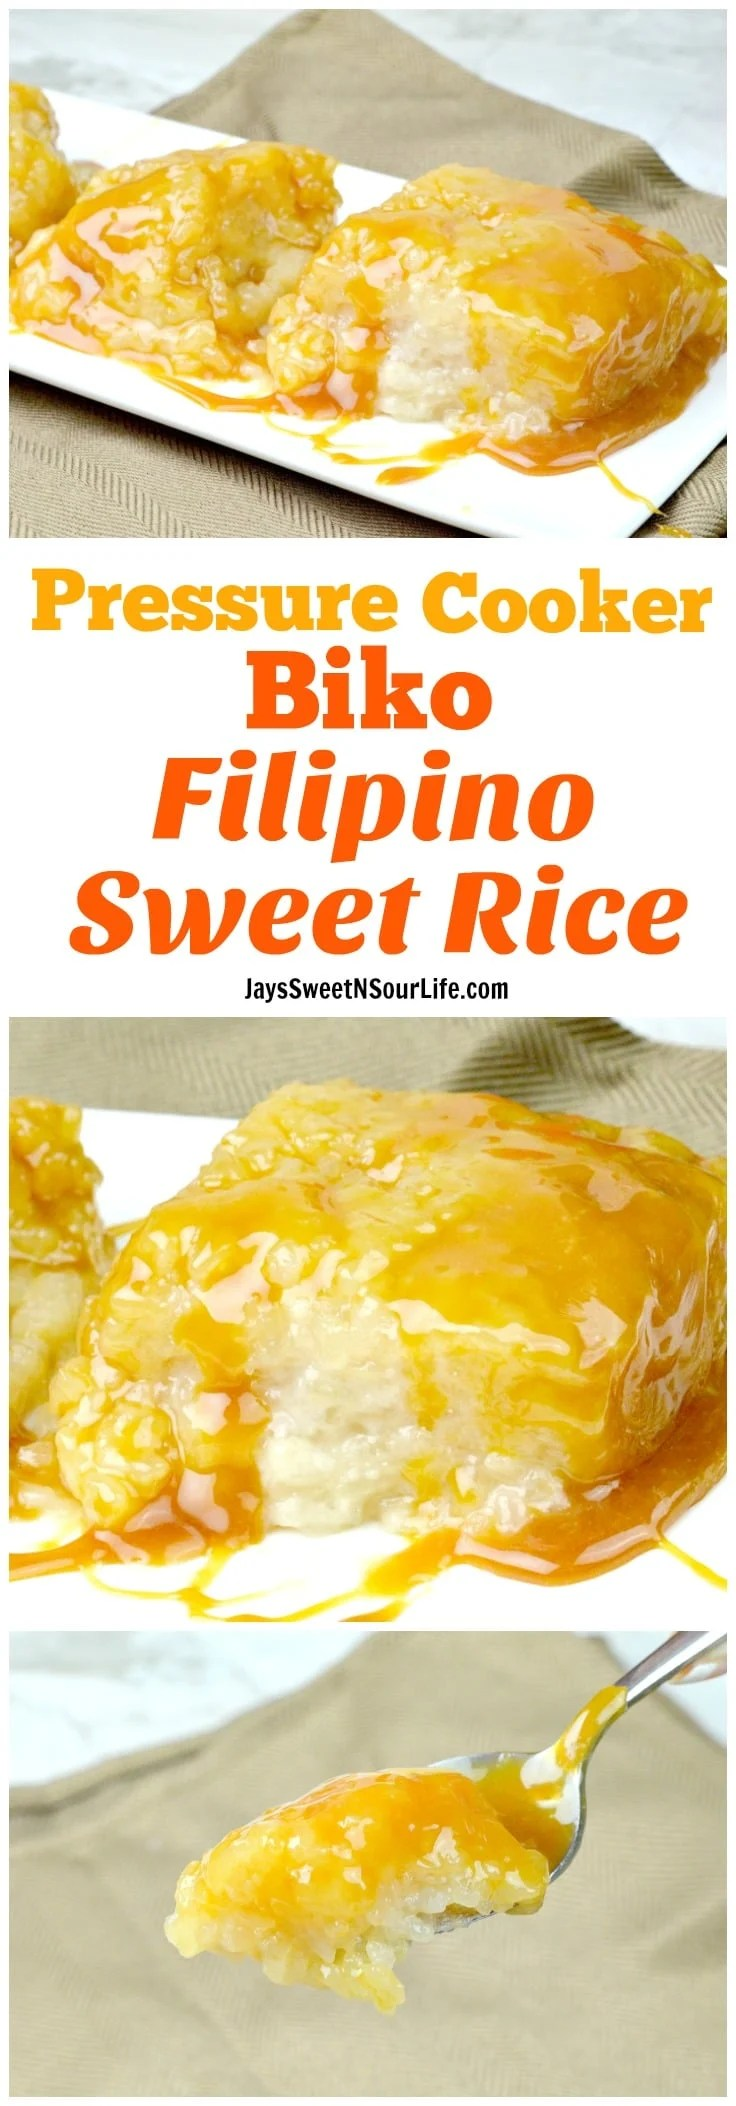 Pressure Cooker Biko Filipino Sweet Rice Cake (No Soak ...